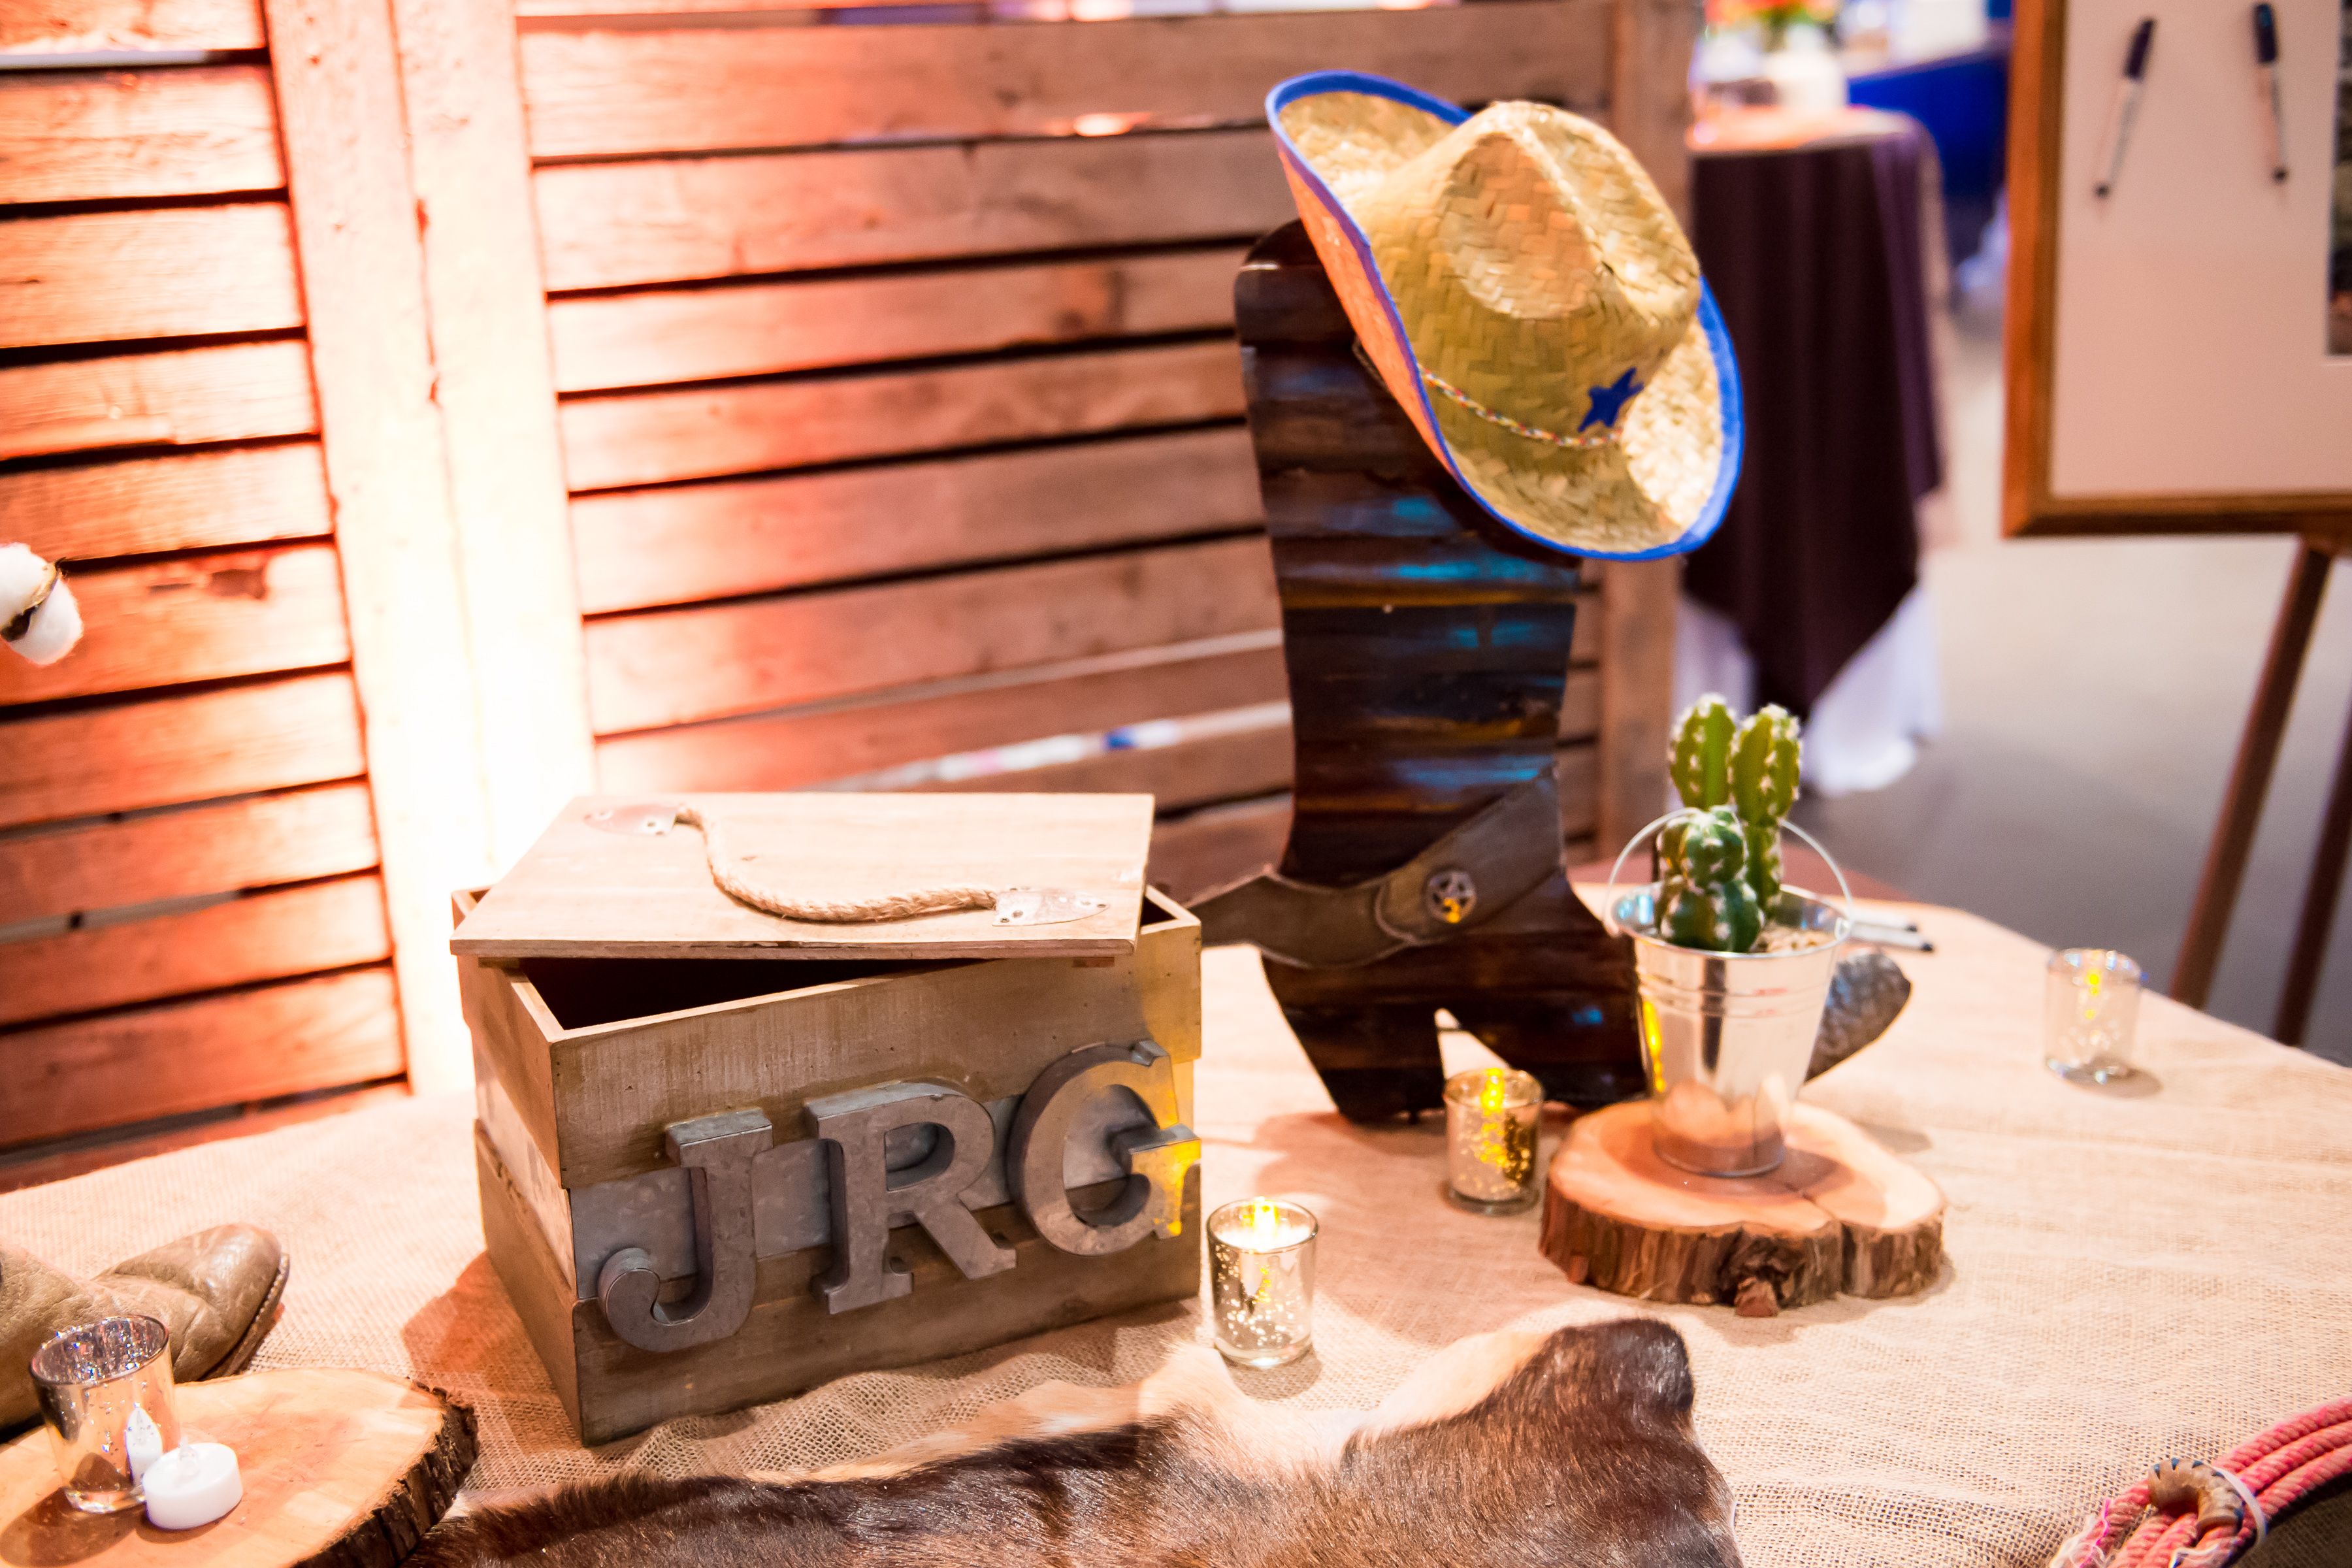 Texas Style! - Events by Peta